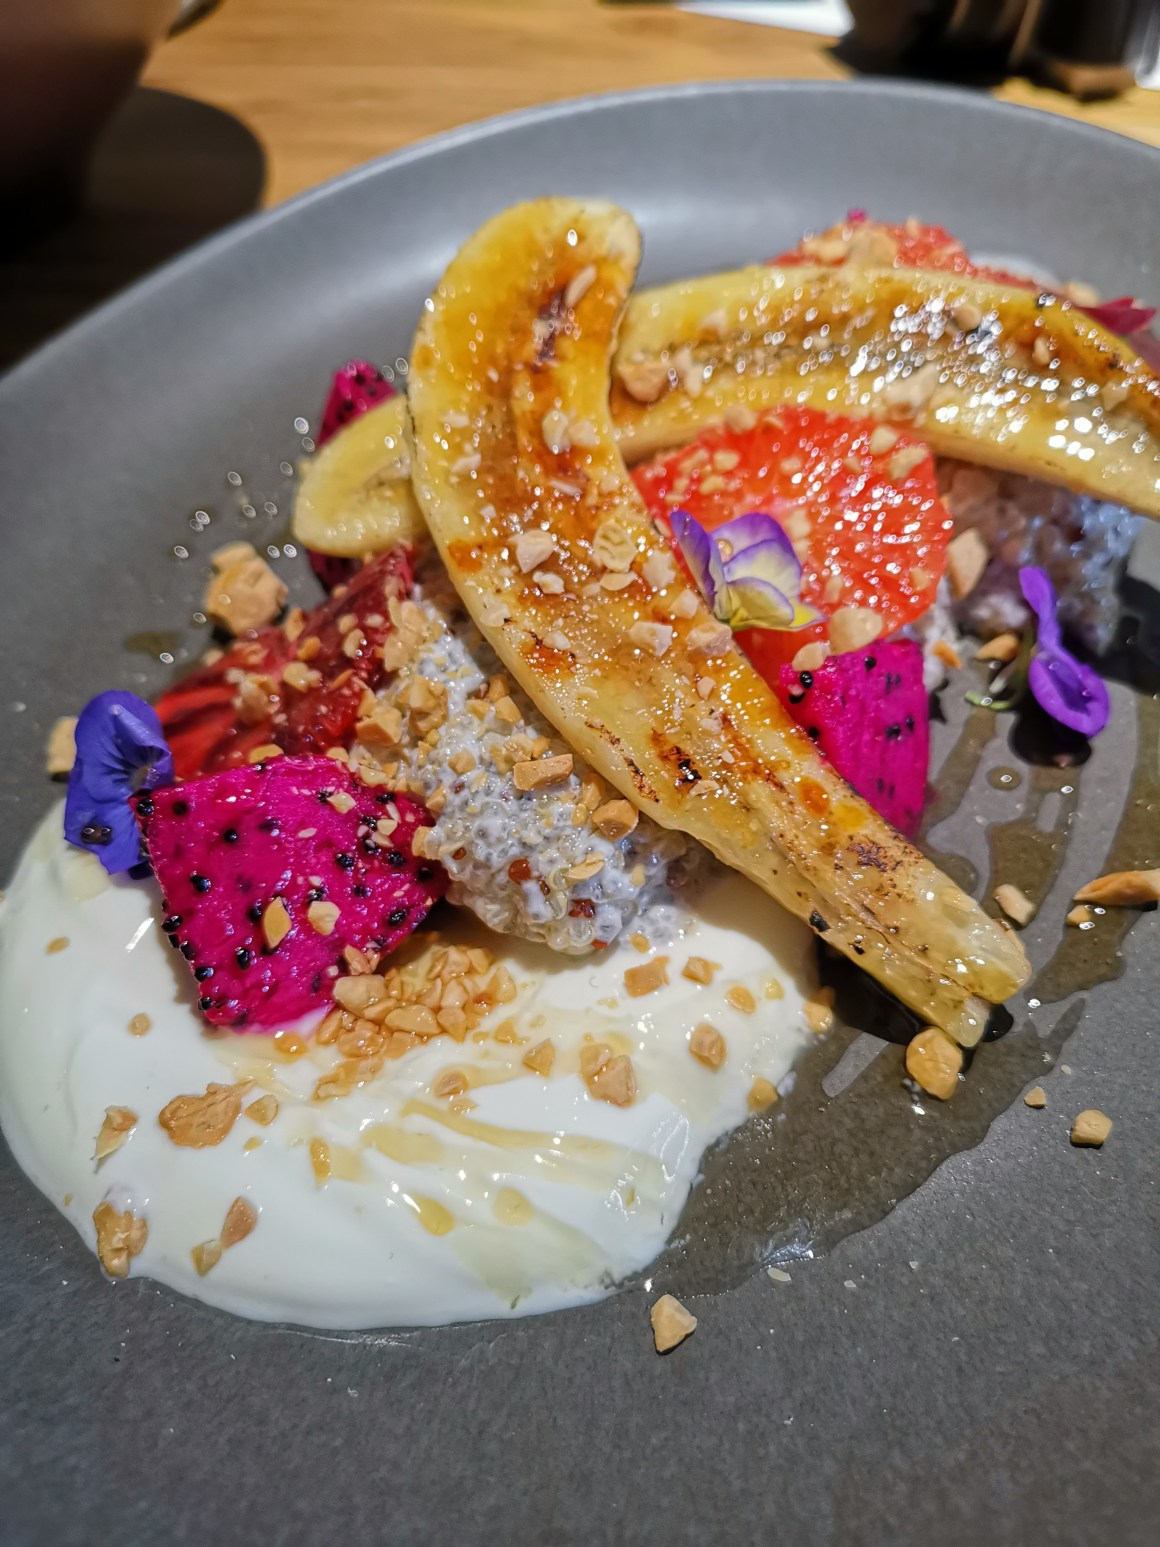 Kafe Utu, First Afro Cafe & Lounge In Singapore - Quinoa Chia Seed Pudding  ($18)